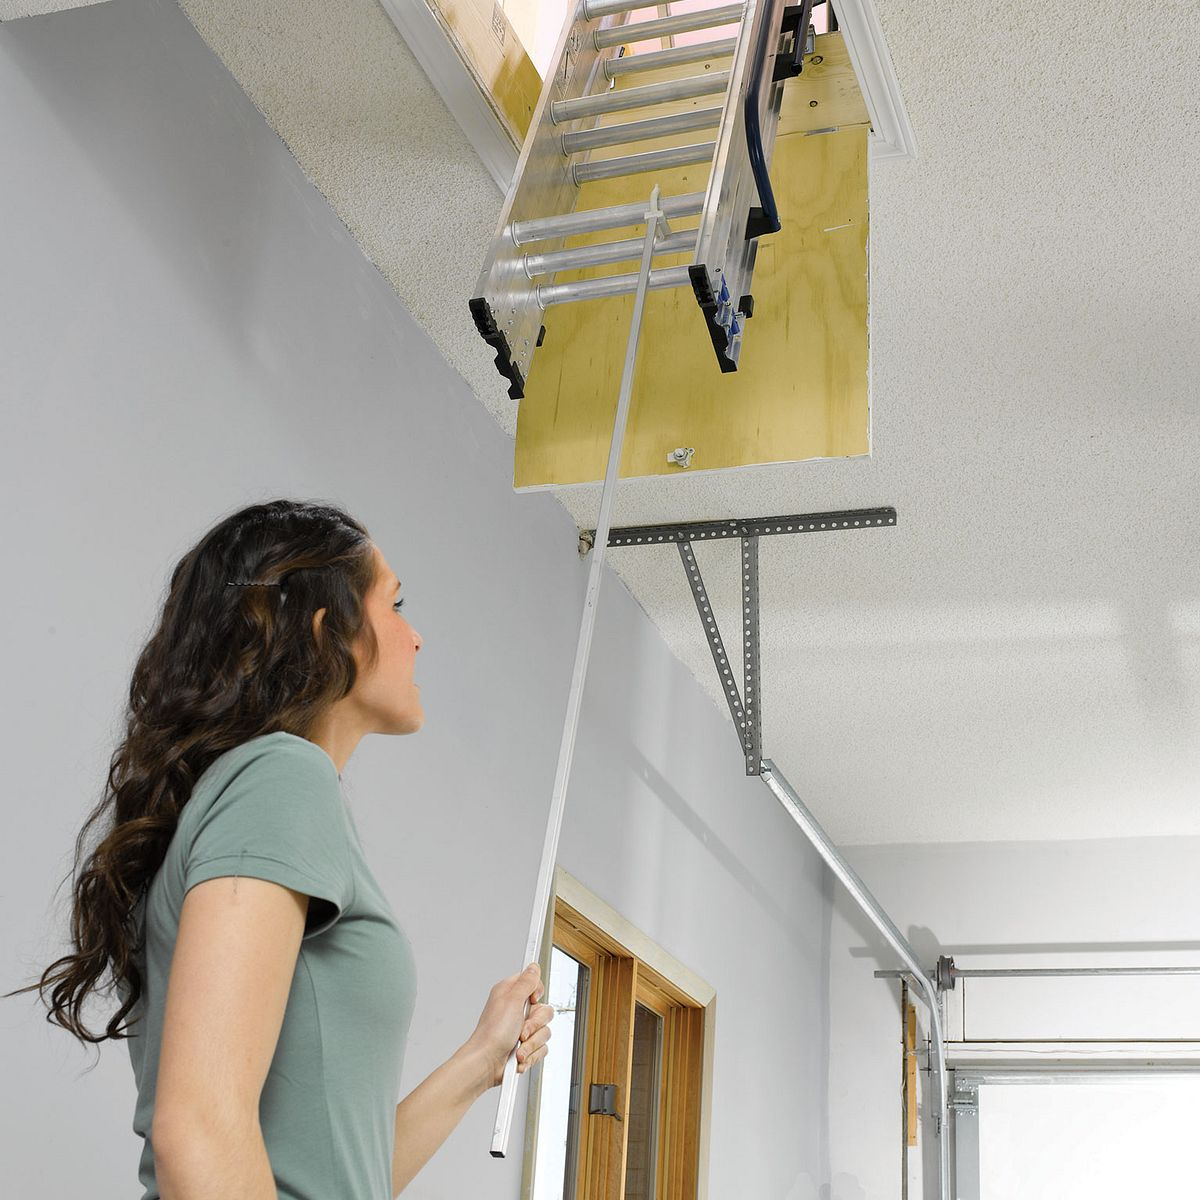 ... AA1510CA Attic Ladders - Werner CA ...  sc 1 st  Werner Ladder & AA1510CA | Attic Ladders | Werner CA